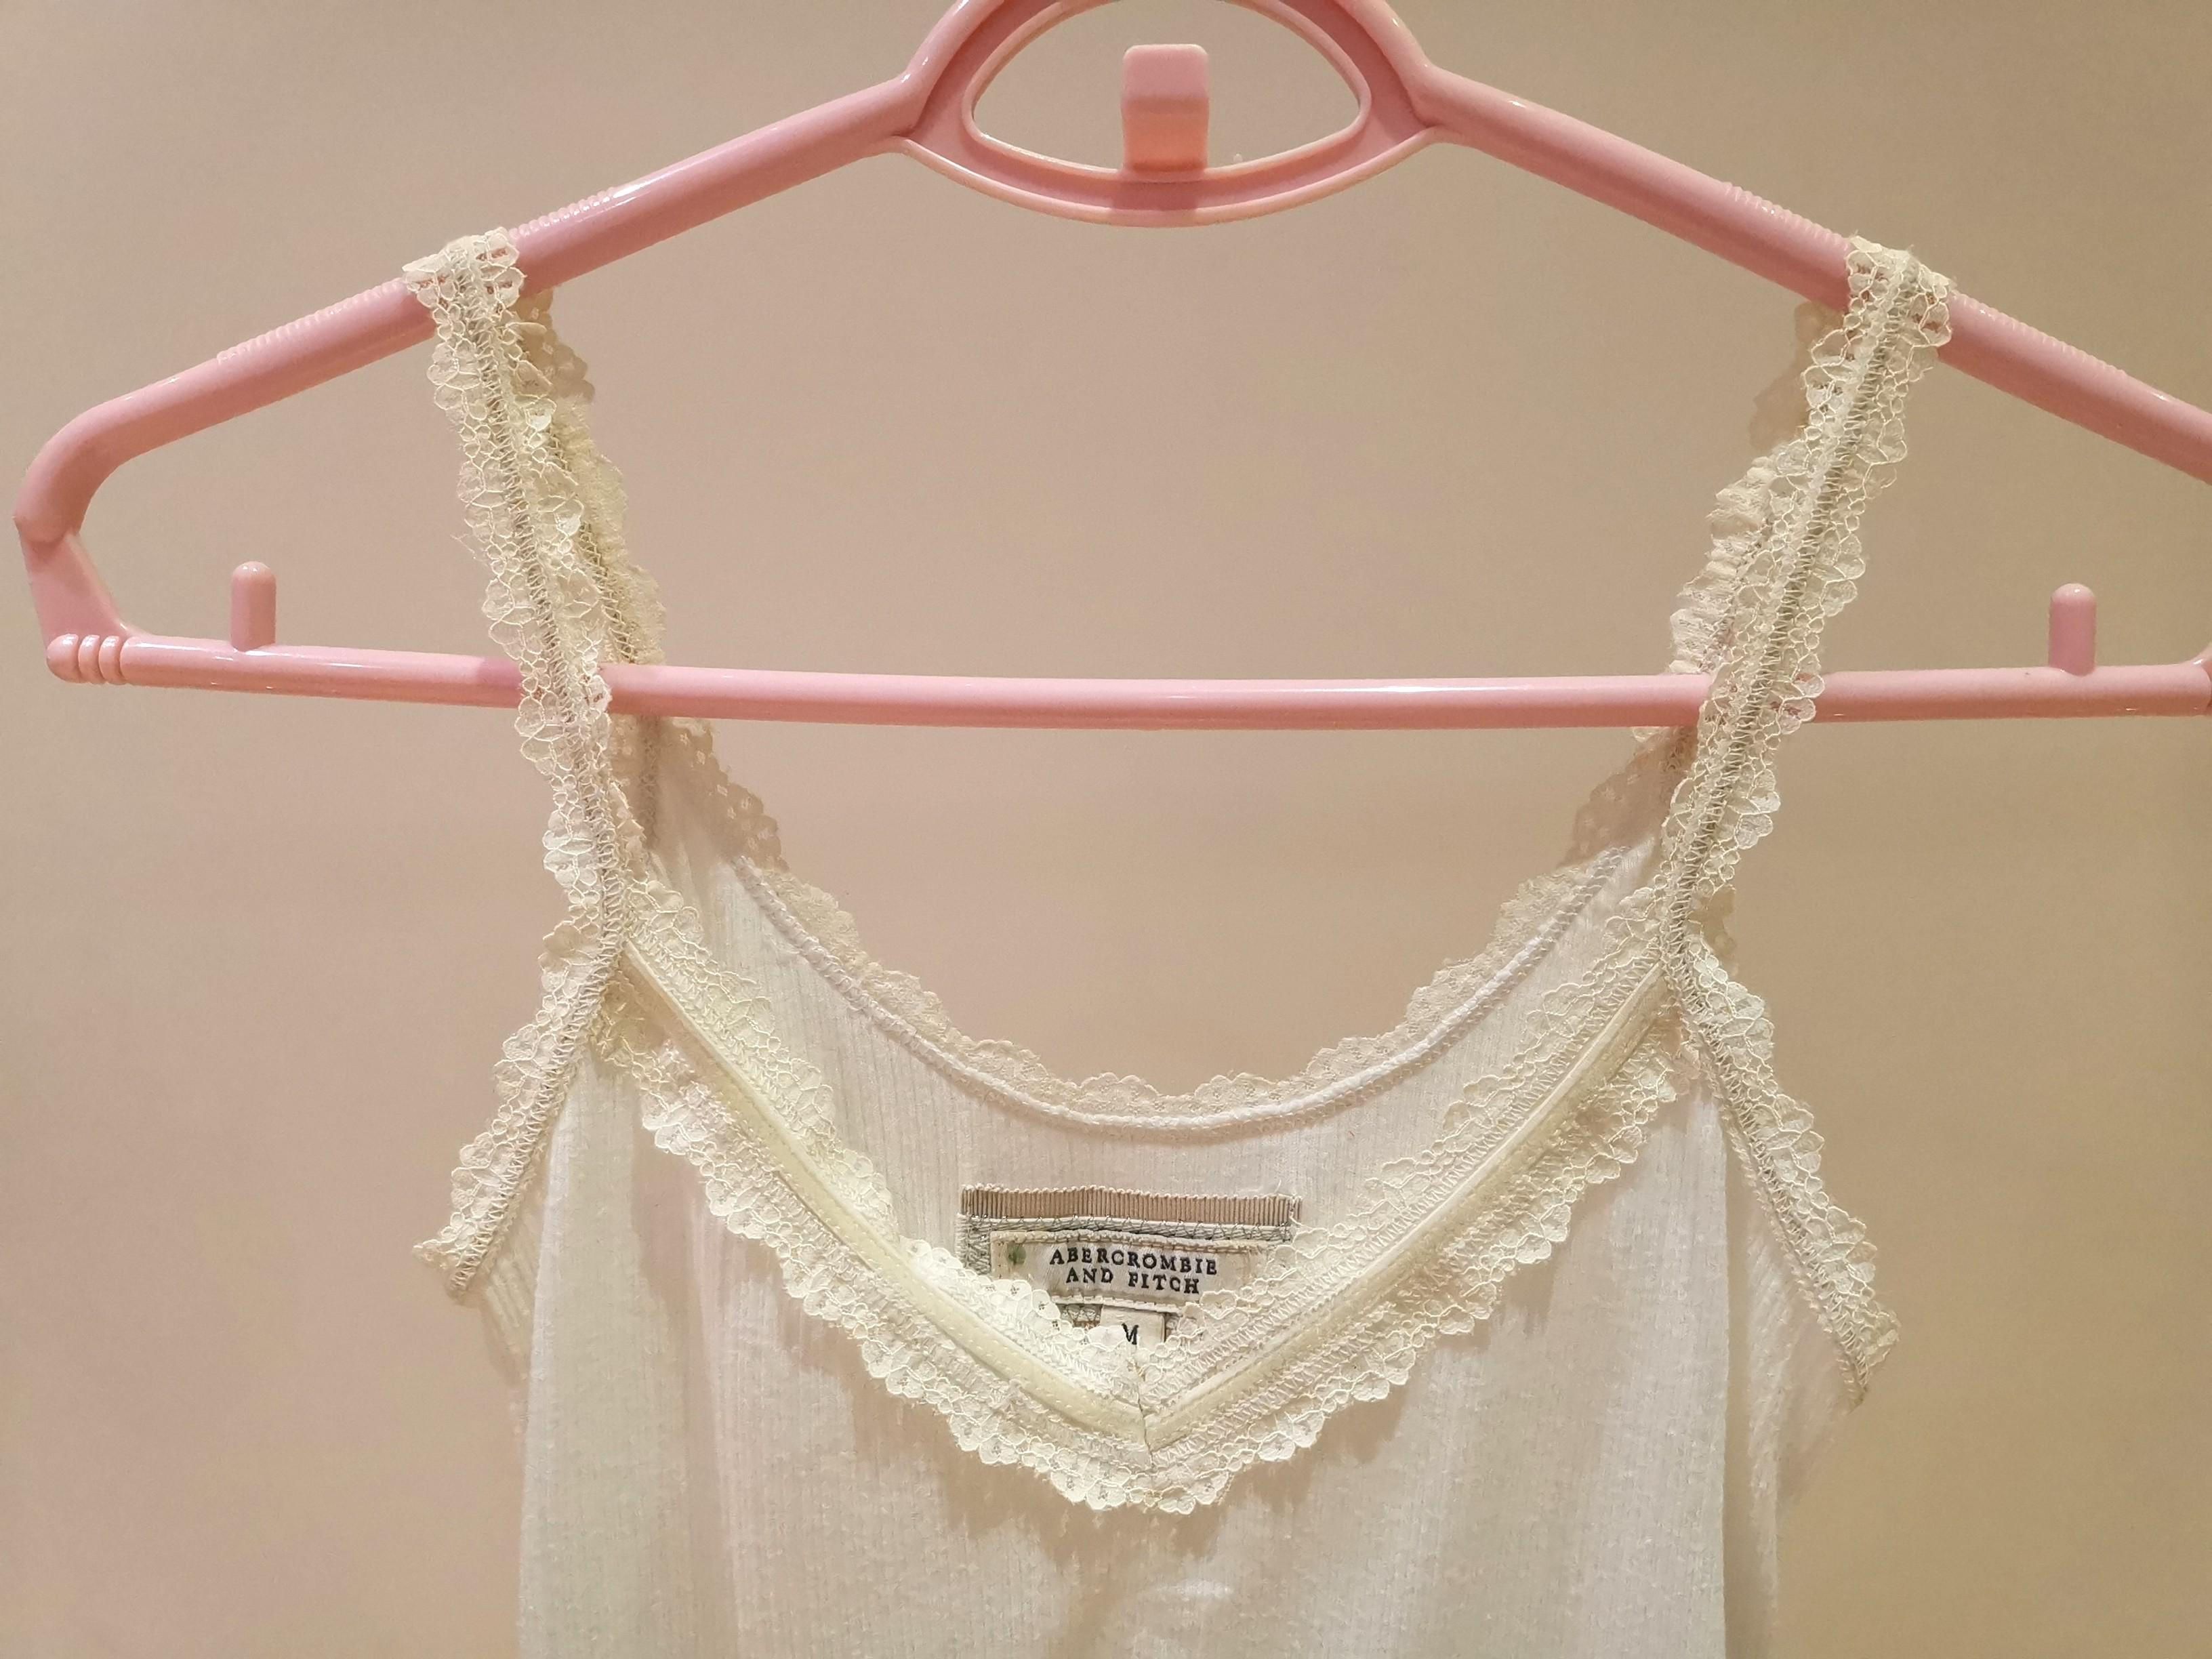 Abercrombie and Finch lace top